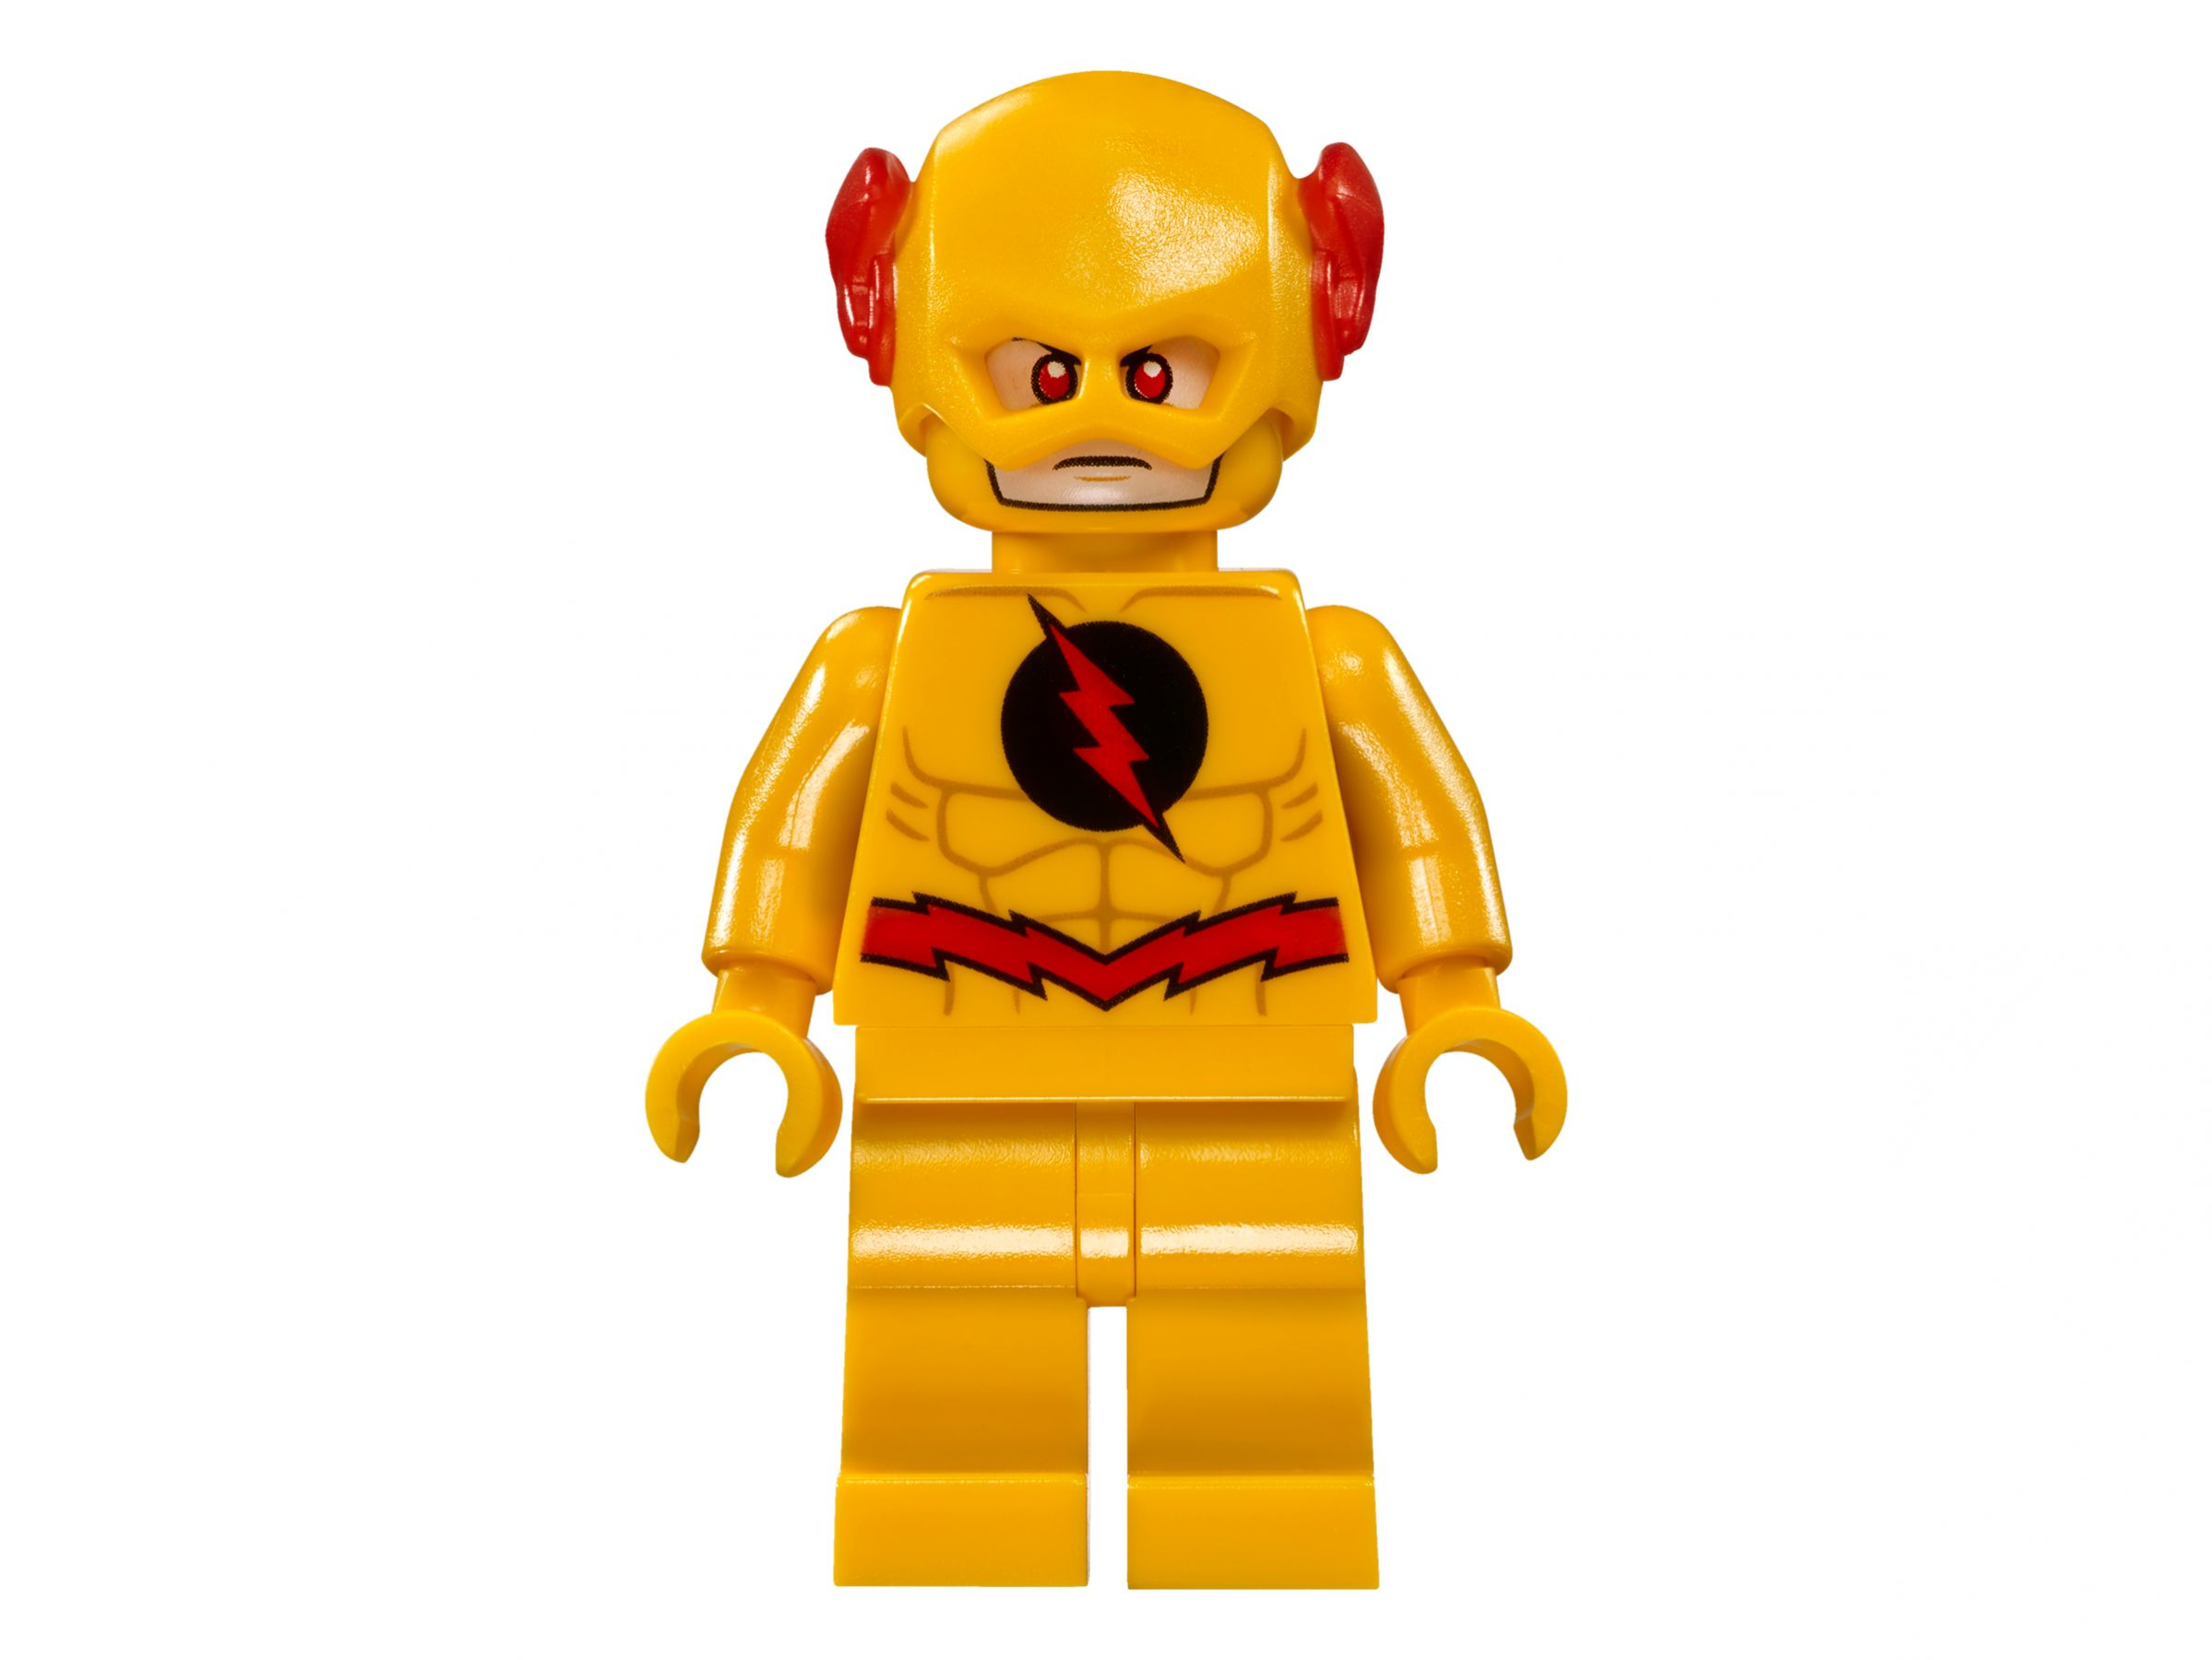 LEGO Super Heroes 76098 Speed Force Freeze Verfolgungsjagd LEGO_76098_alt6.jpg